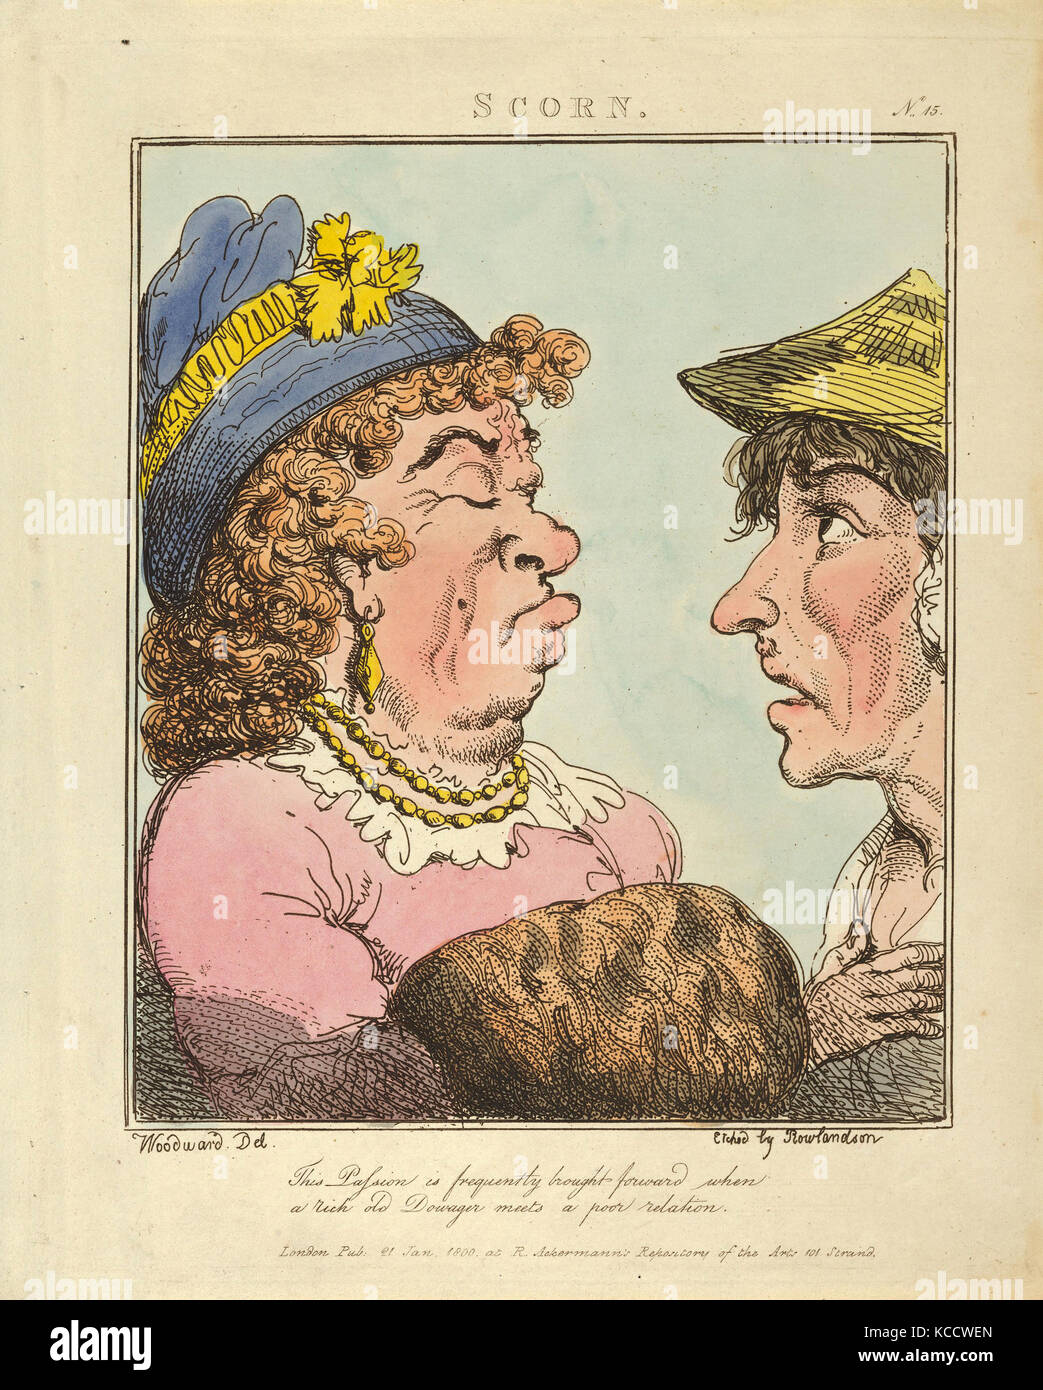 Drawings and Prints, Print, Scorn, Le Brun Travested, or Caricatures of the Passions, Thomas Rowlandson - Stock Image